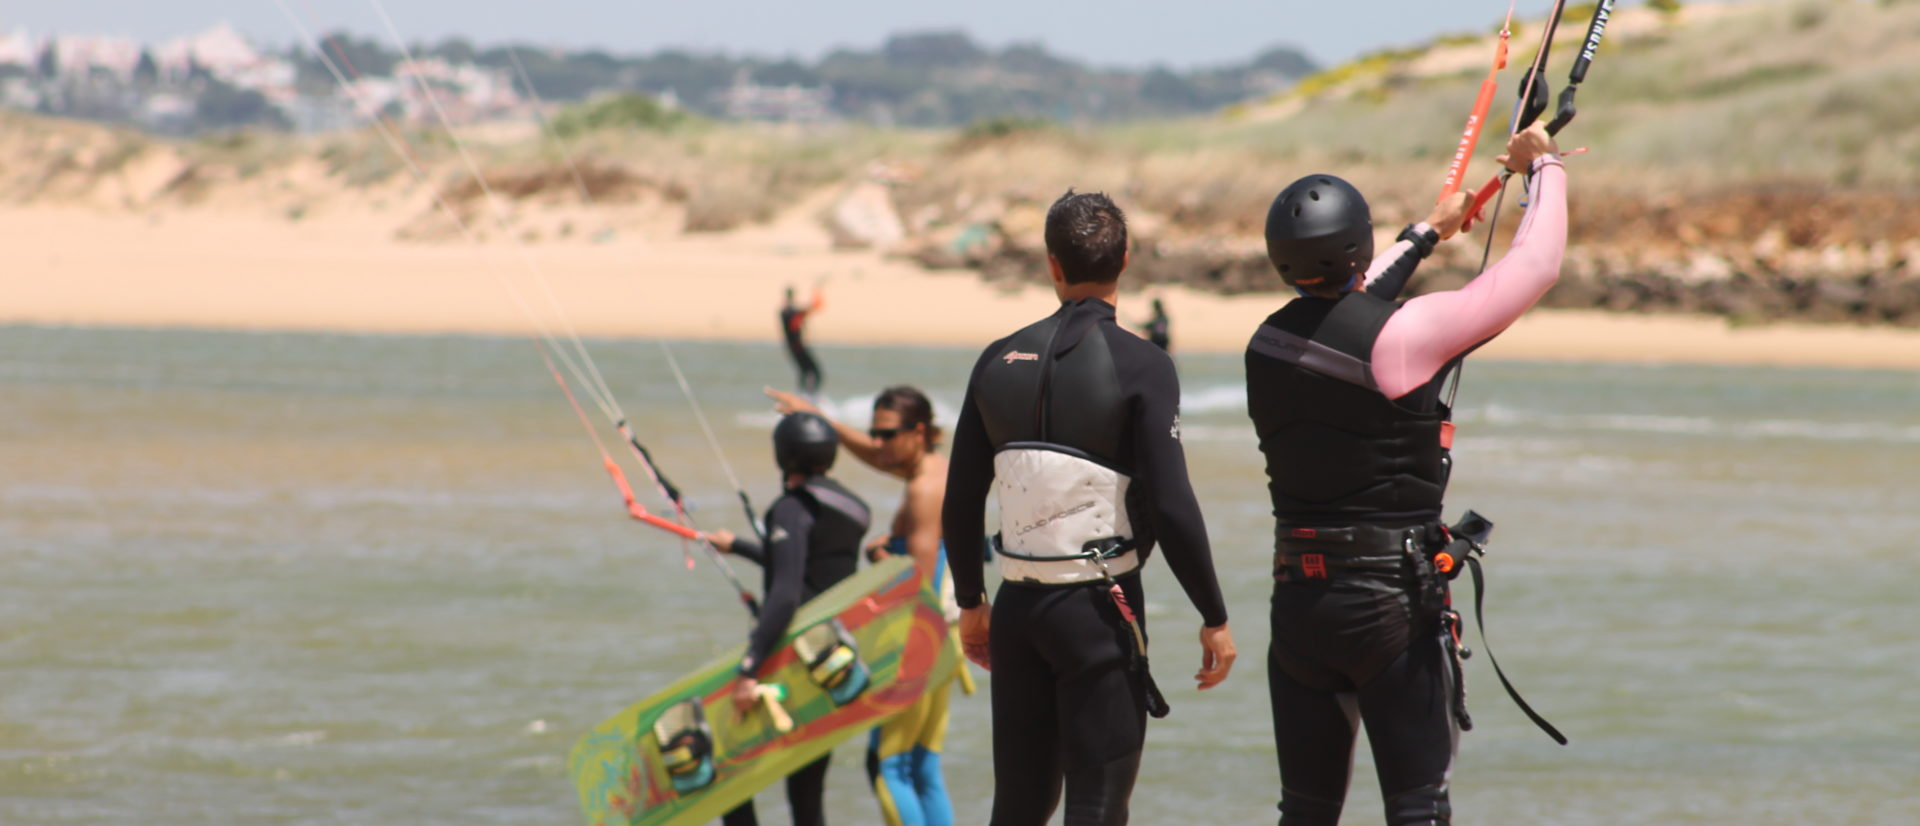 kiteschool-portugal.com